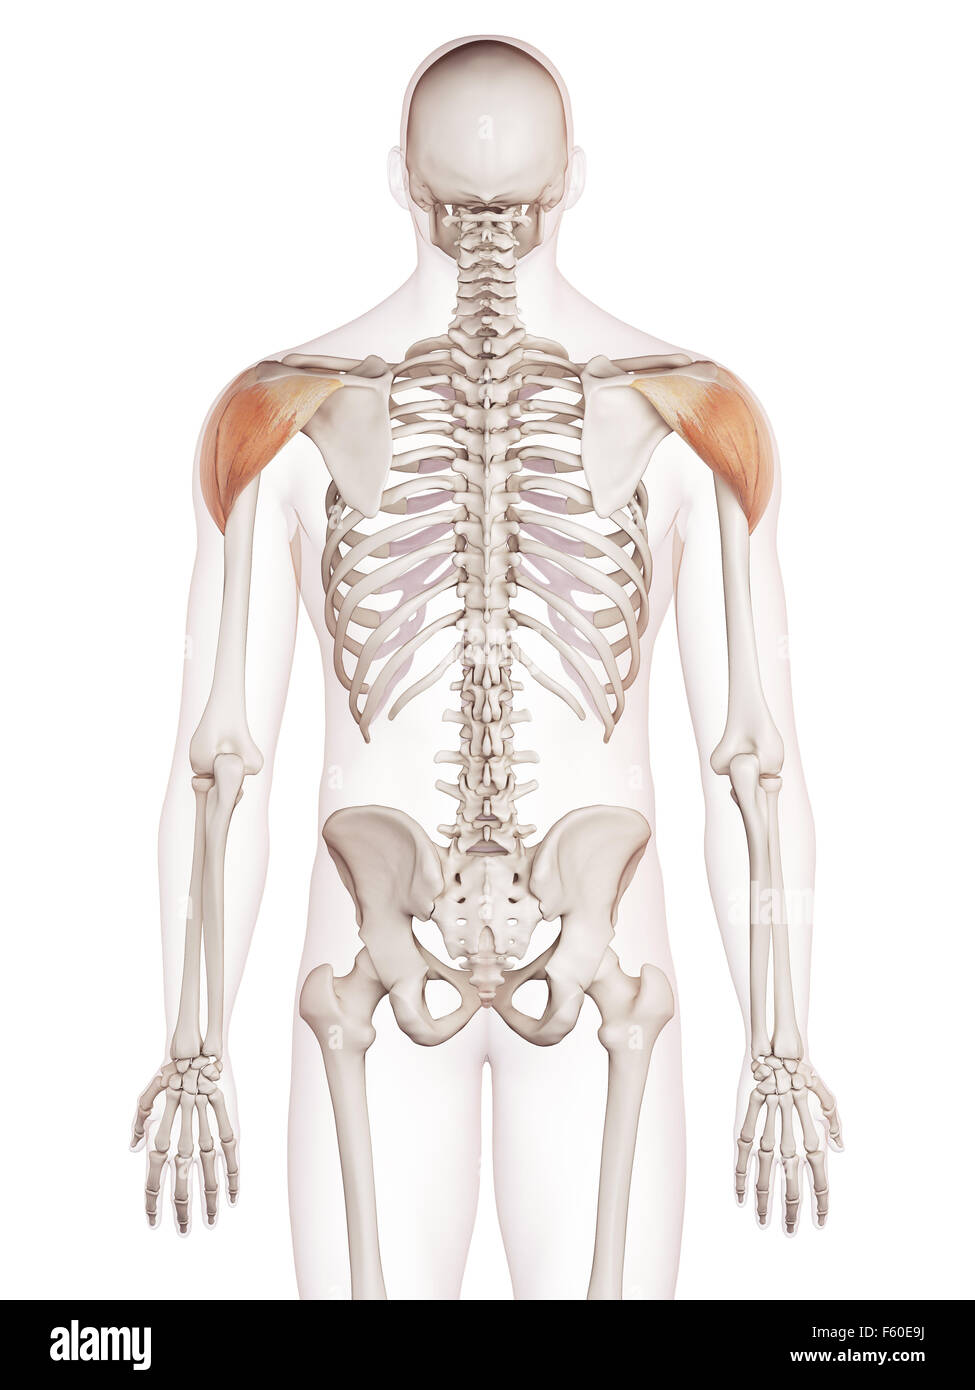 Deltoid Cut Out Stock Images & Pictures - Alamy